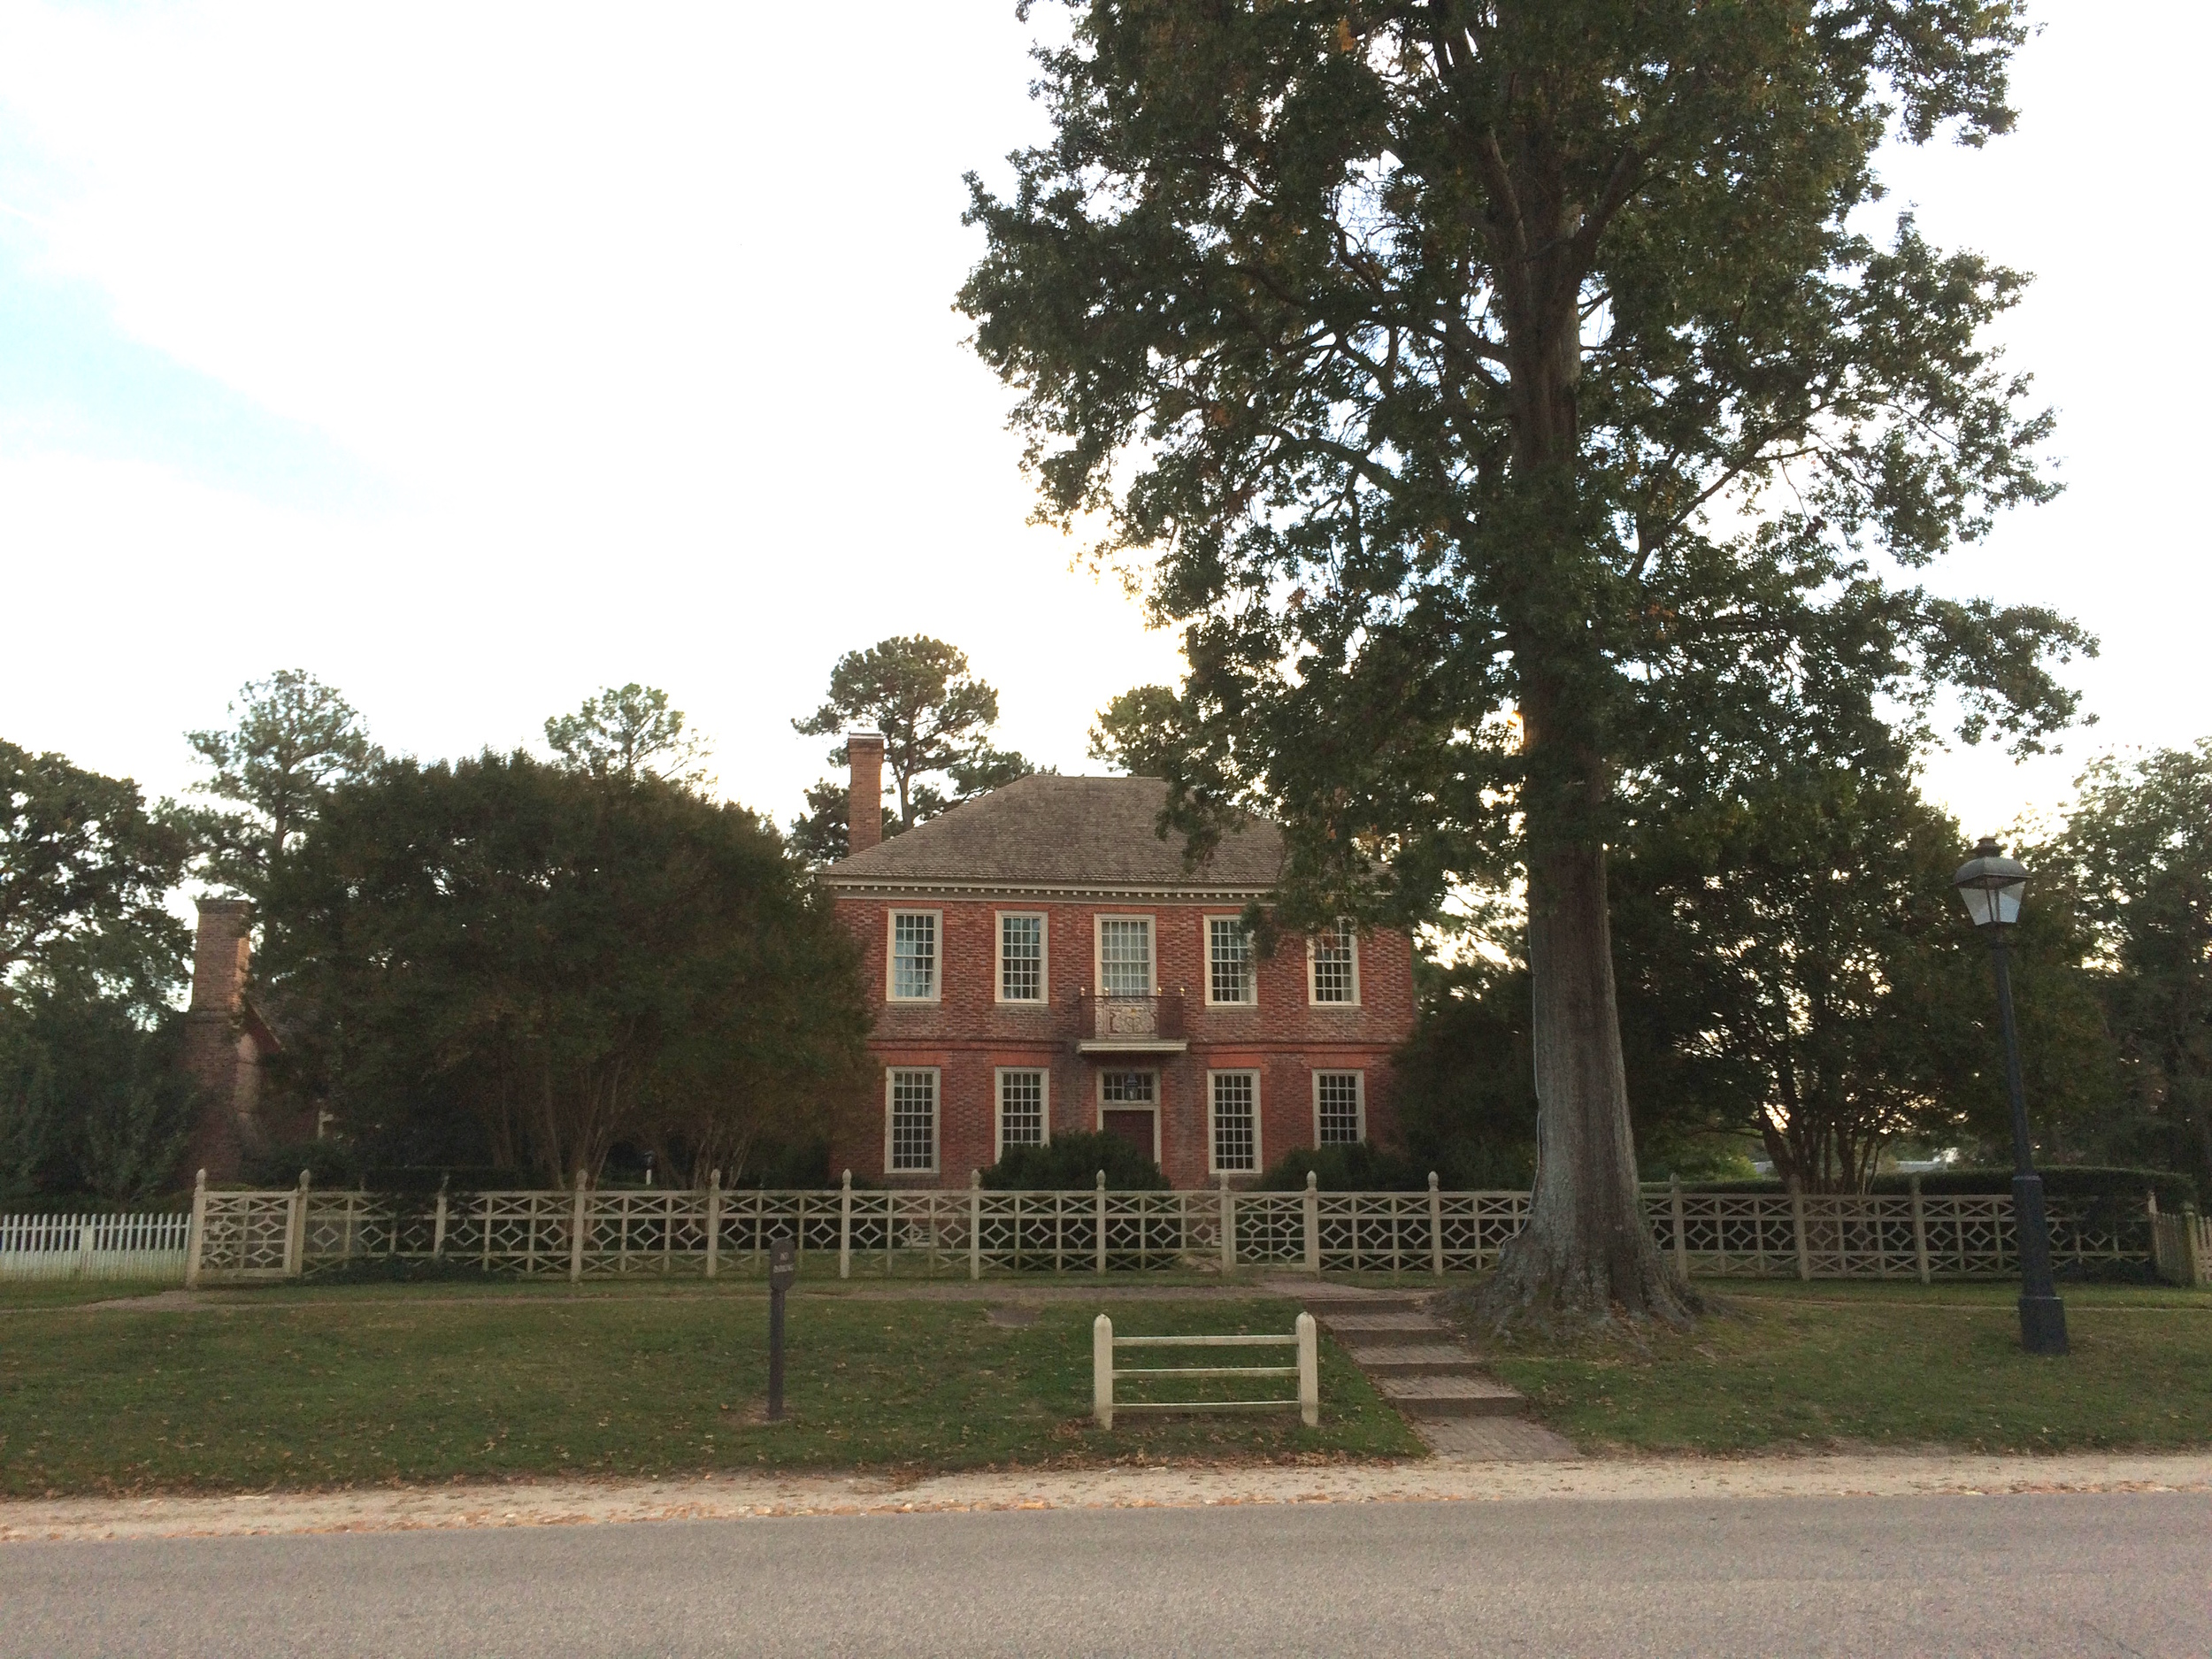 The Lightfoot House (previously called the Coke-Lightfoot House) was purchased by John Coke (the 3rd), willed to his wife in 1865 & conveyed to their daughter, Mary E. Coke Motely in 1871.